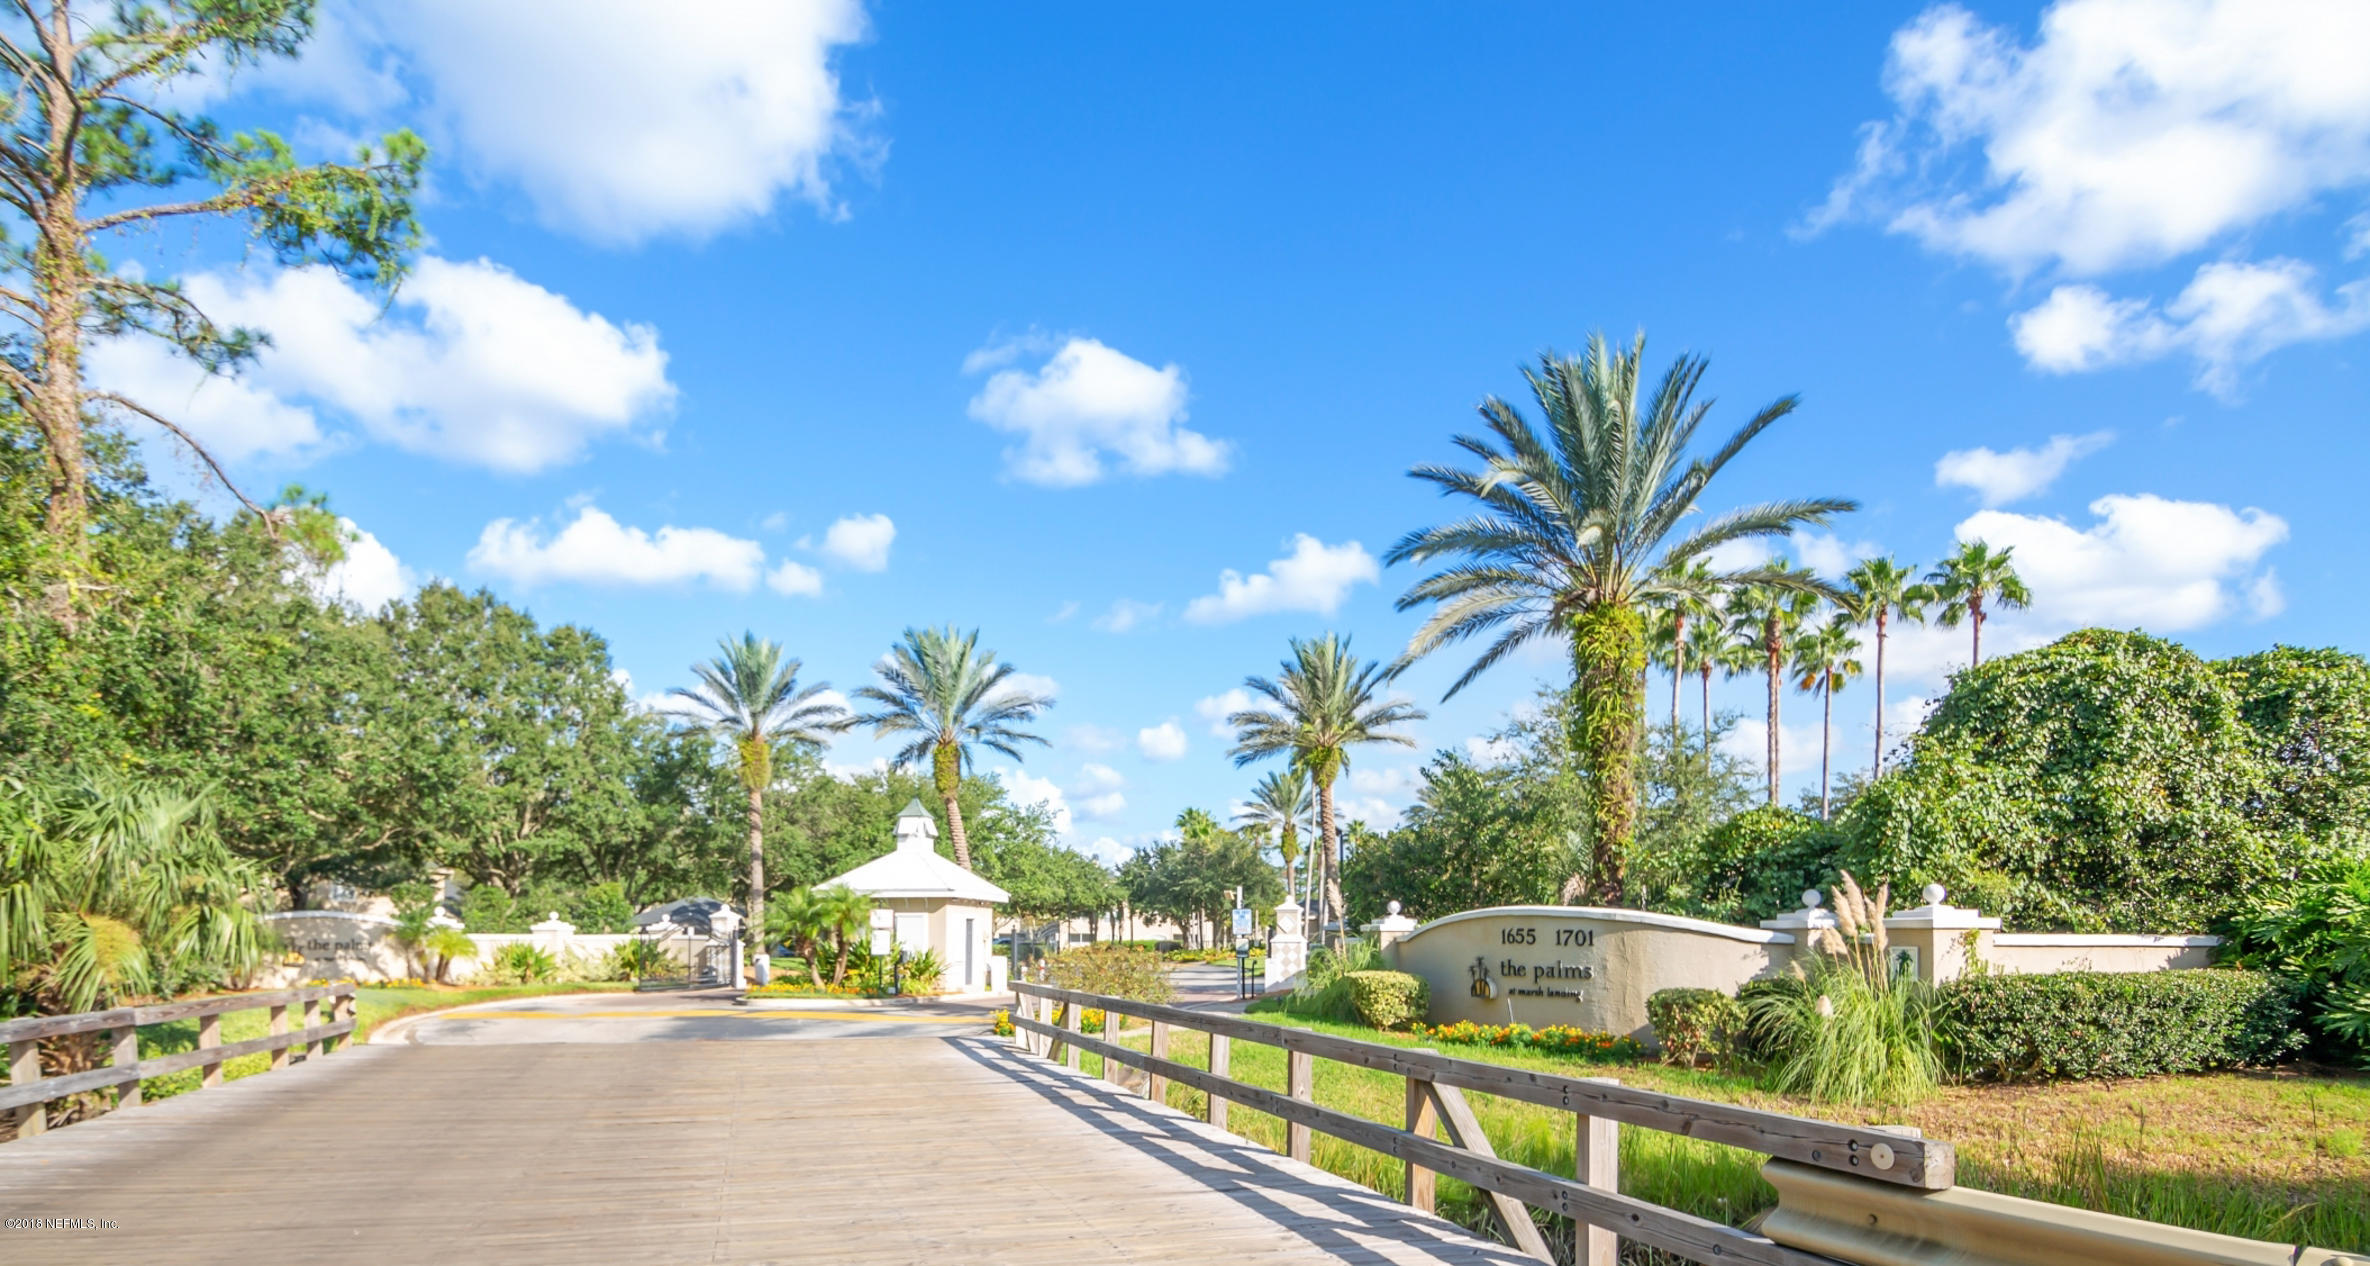 1655 THE GREENS, JACKSONVILLE BEACH, FLORIDA 32250, 1 Bedroom Bedrooms, ,1 BathroomBathrooms,Residential - condos/townhomes,For sale,THE GREENS,961068